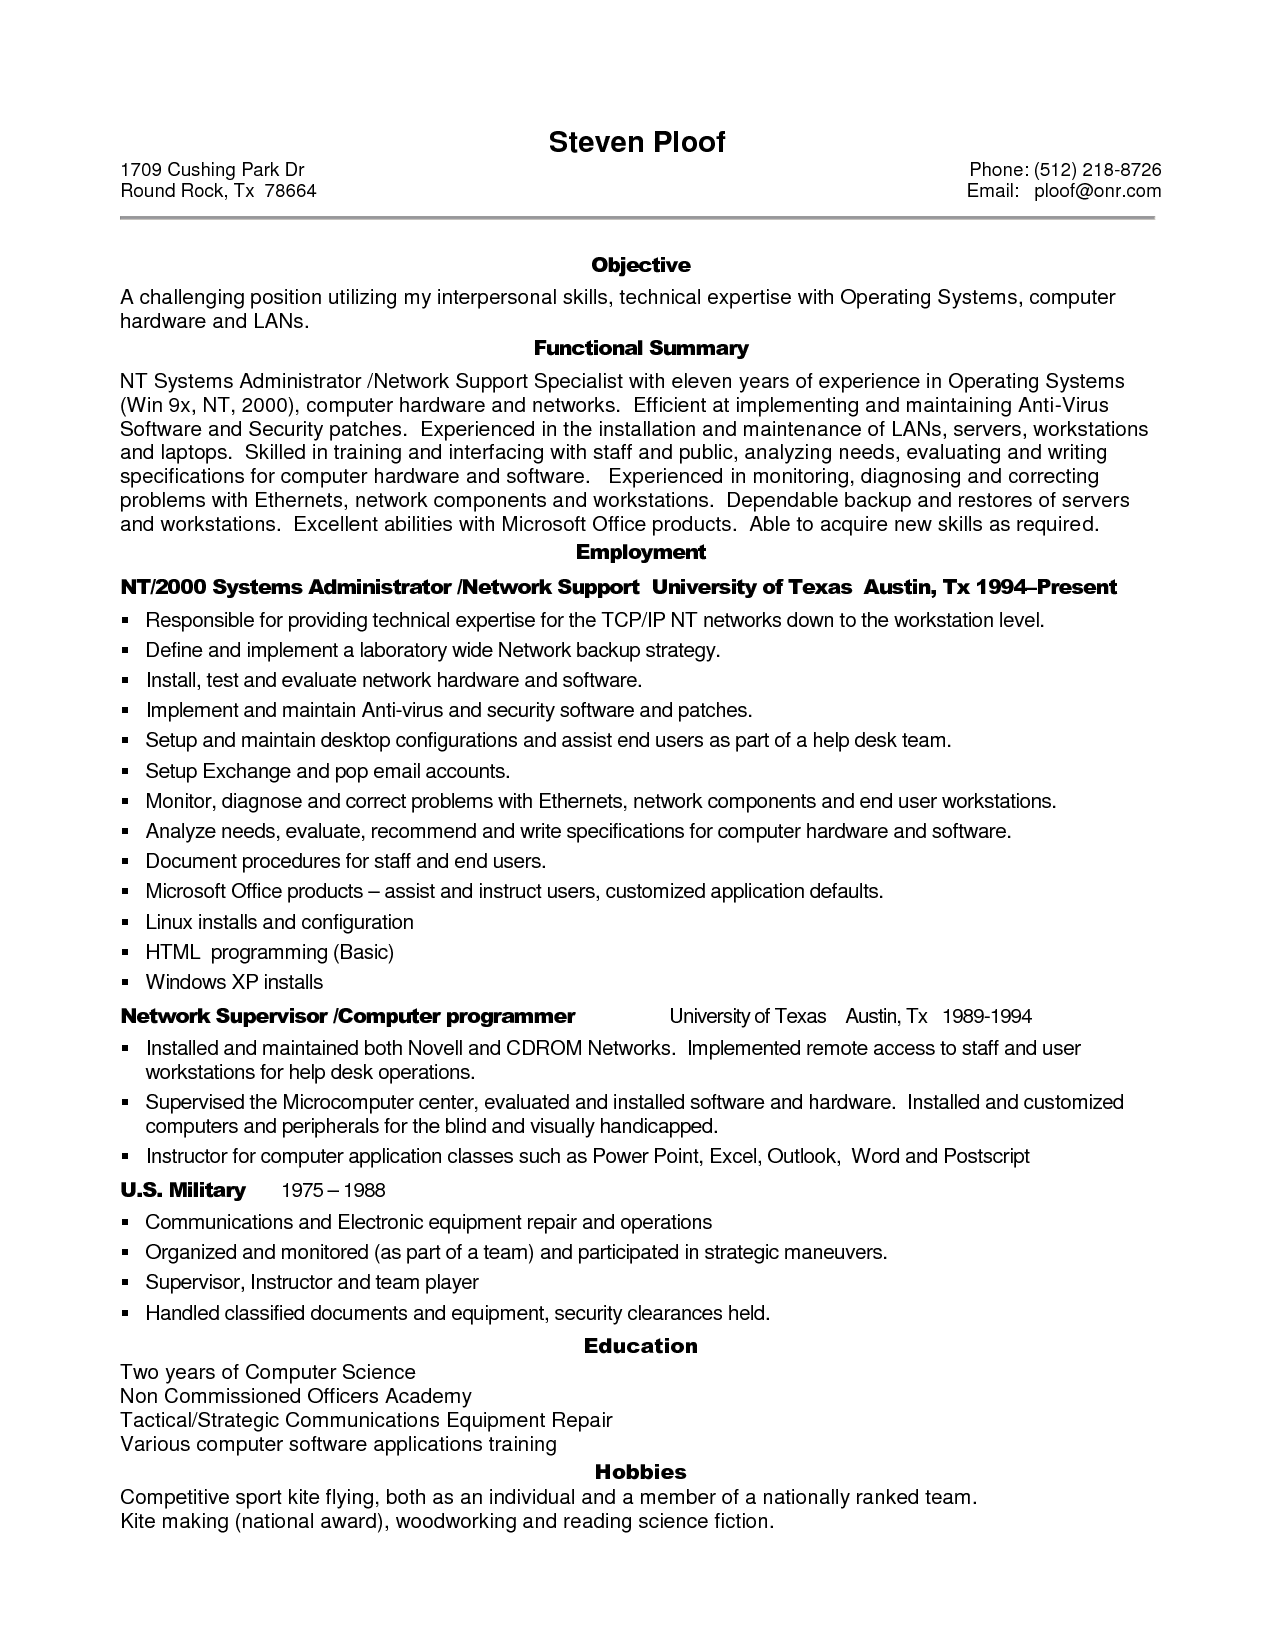 over cv and resume samples with free download professional software engineer intern resume sample